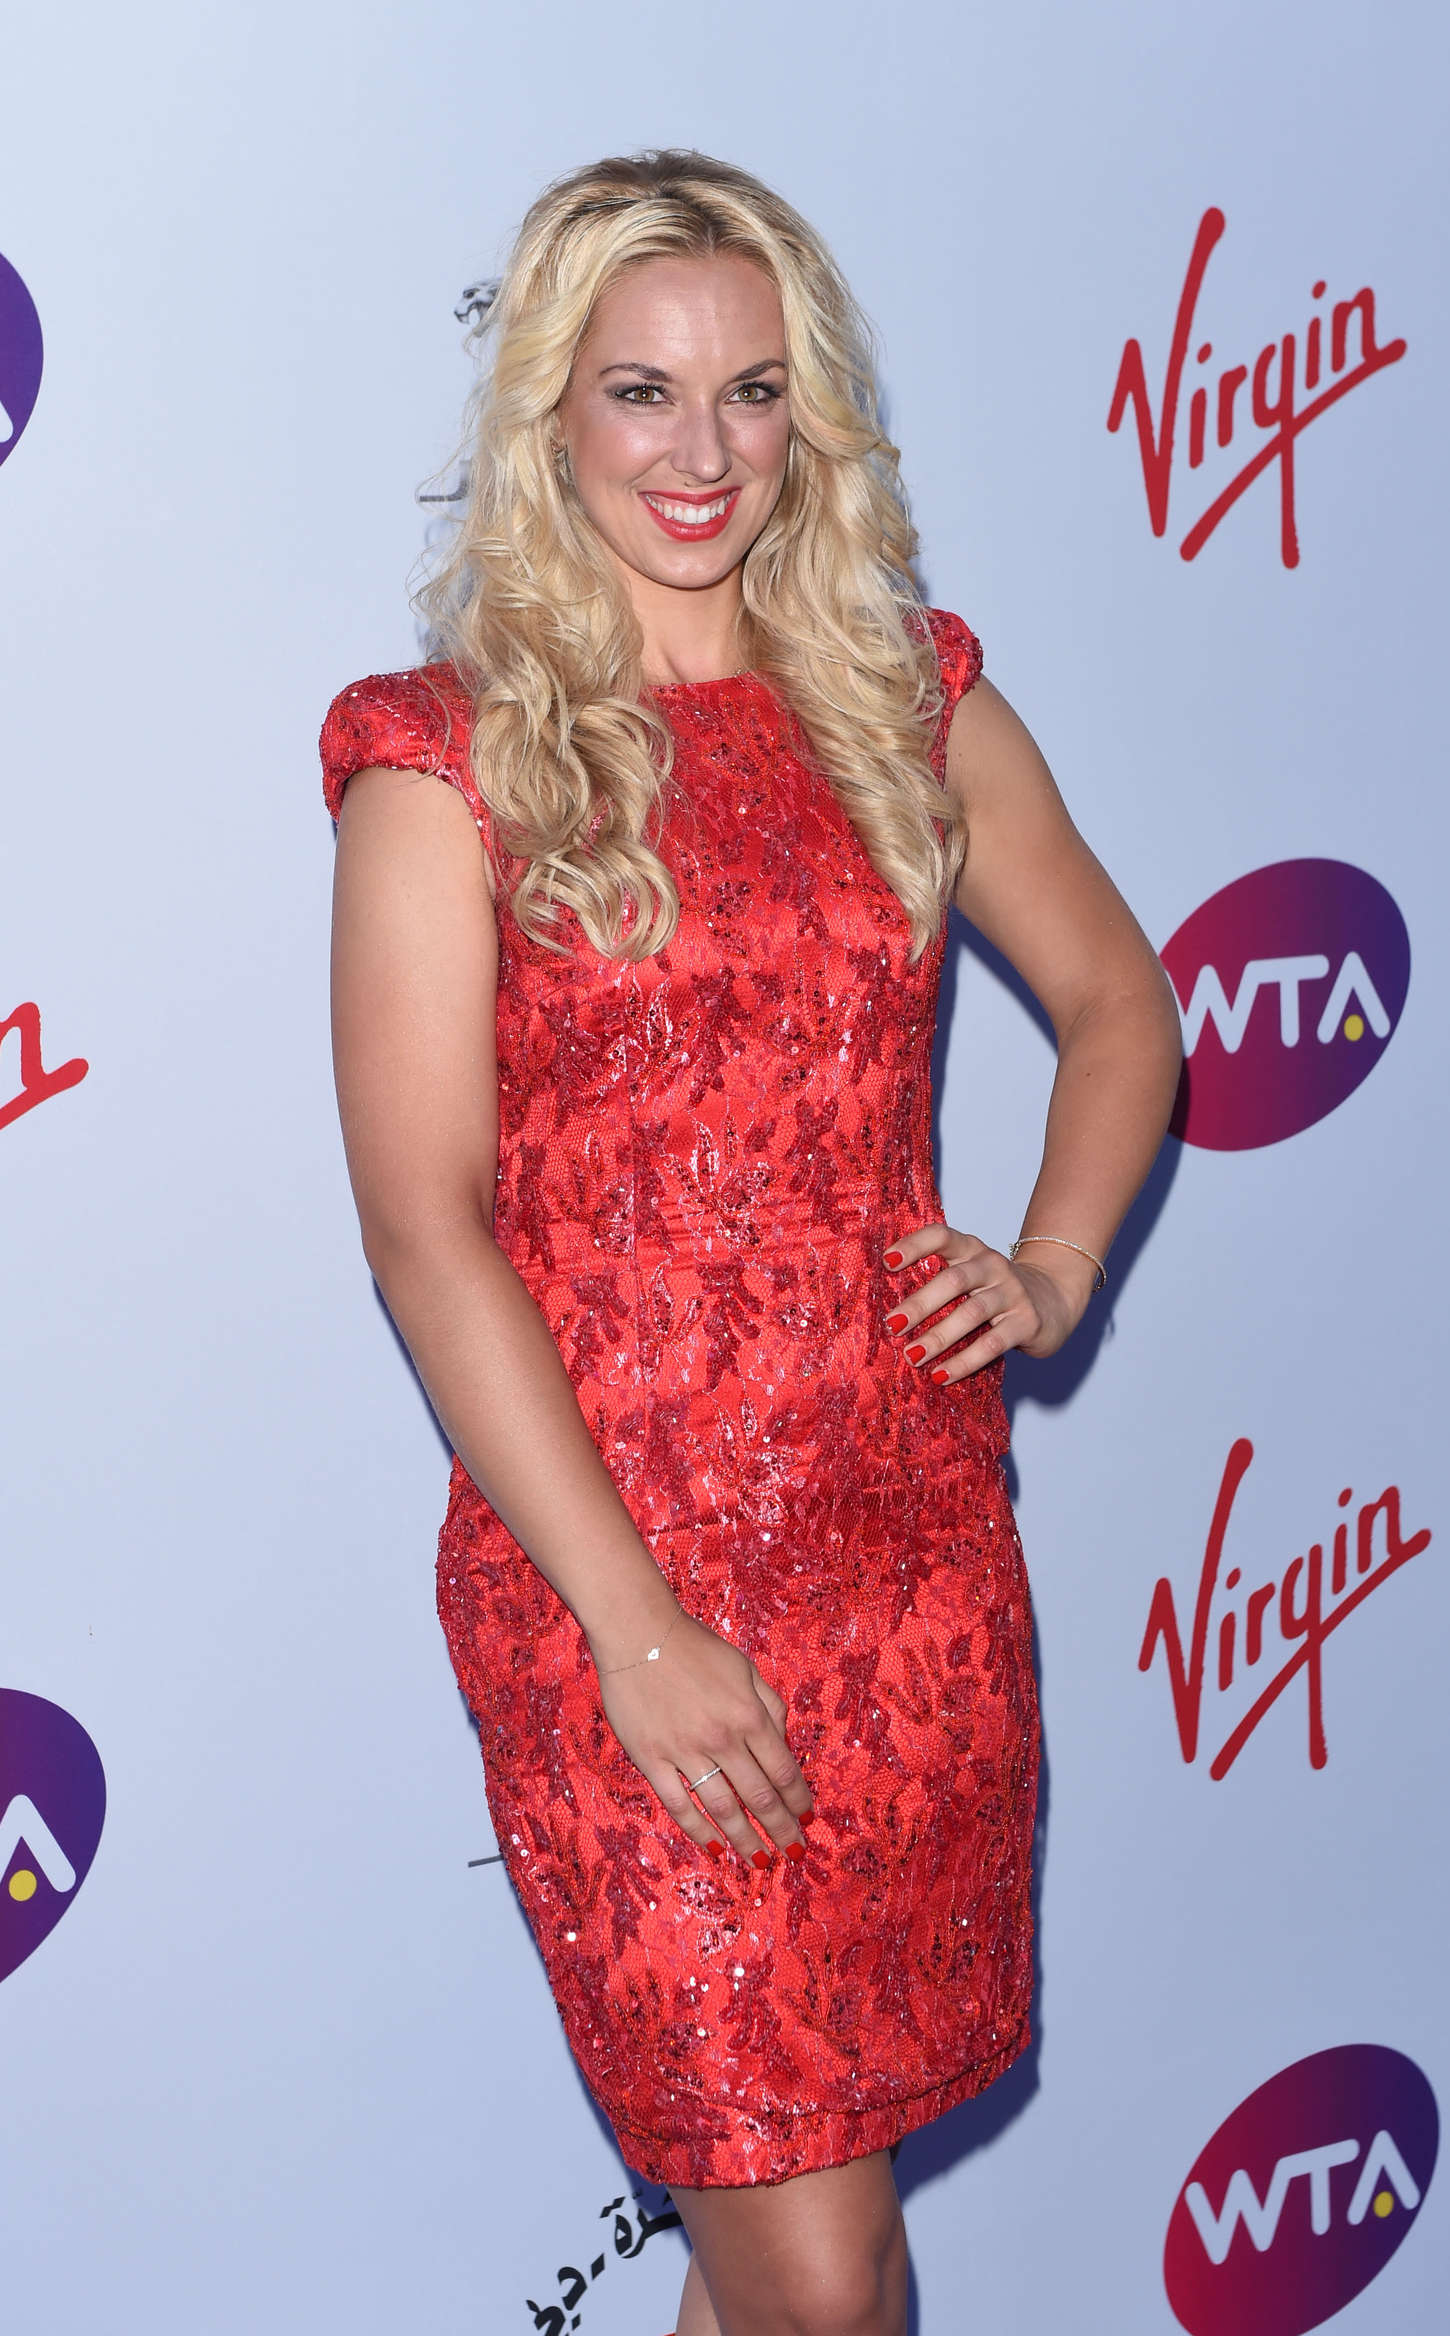 Sabine Lisicki WTA Pre-Wimbledon Party in London